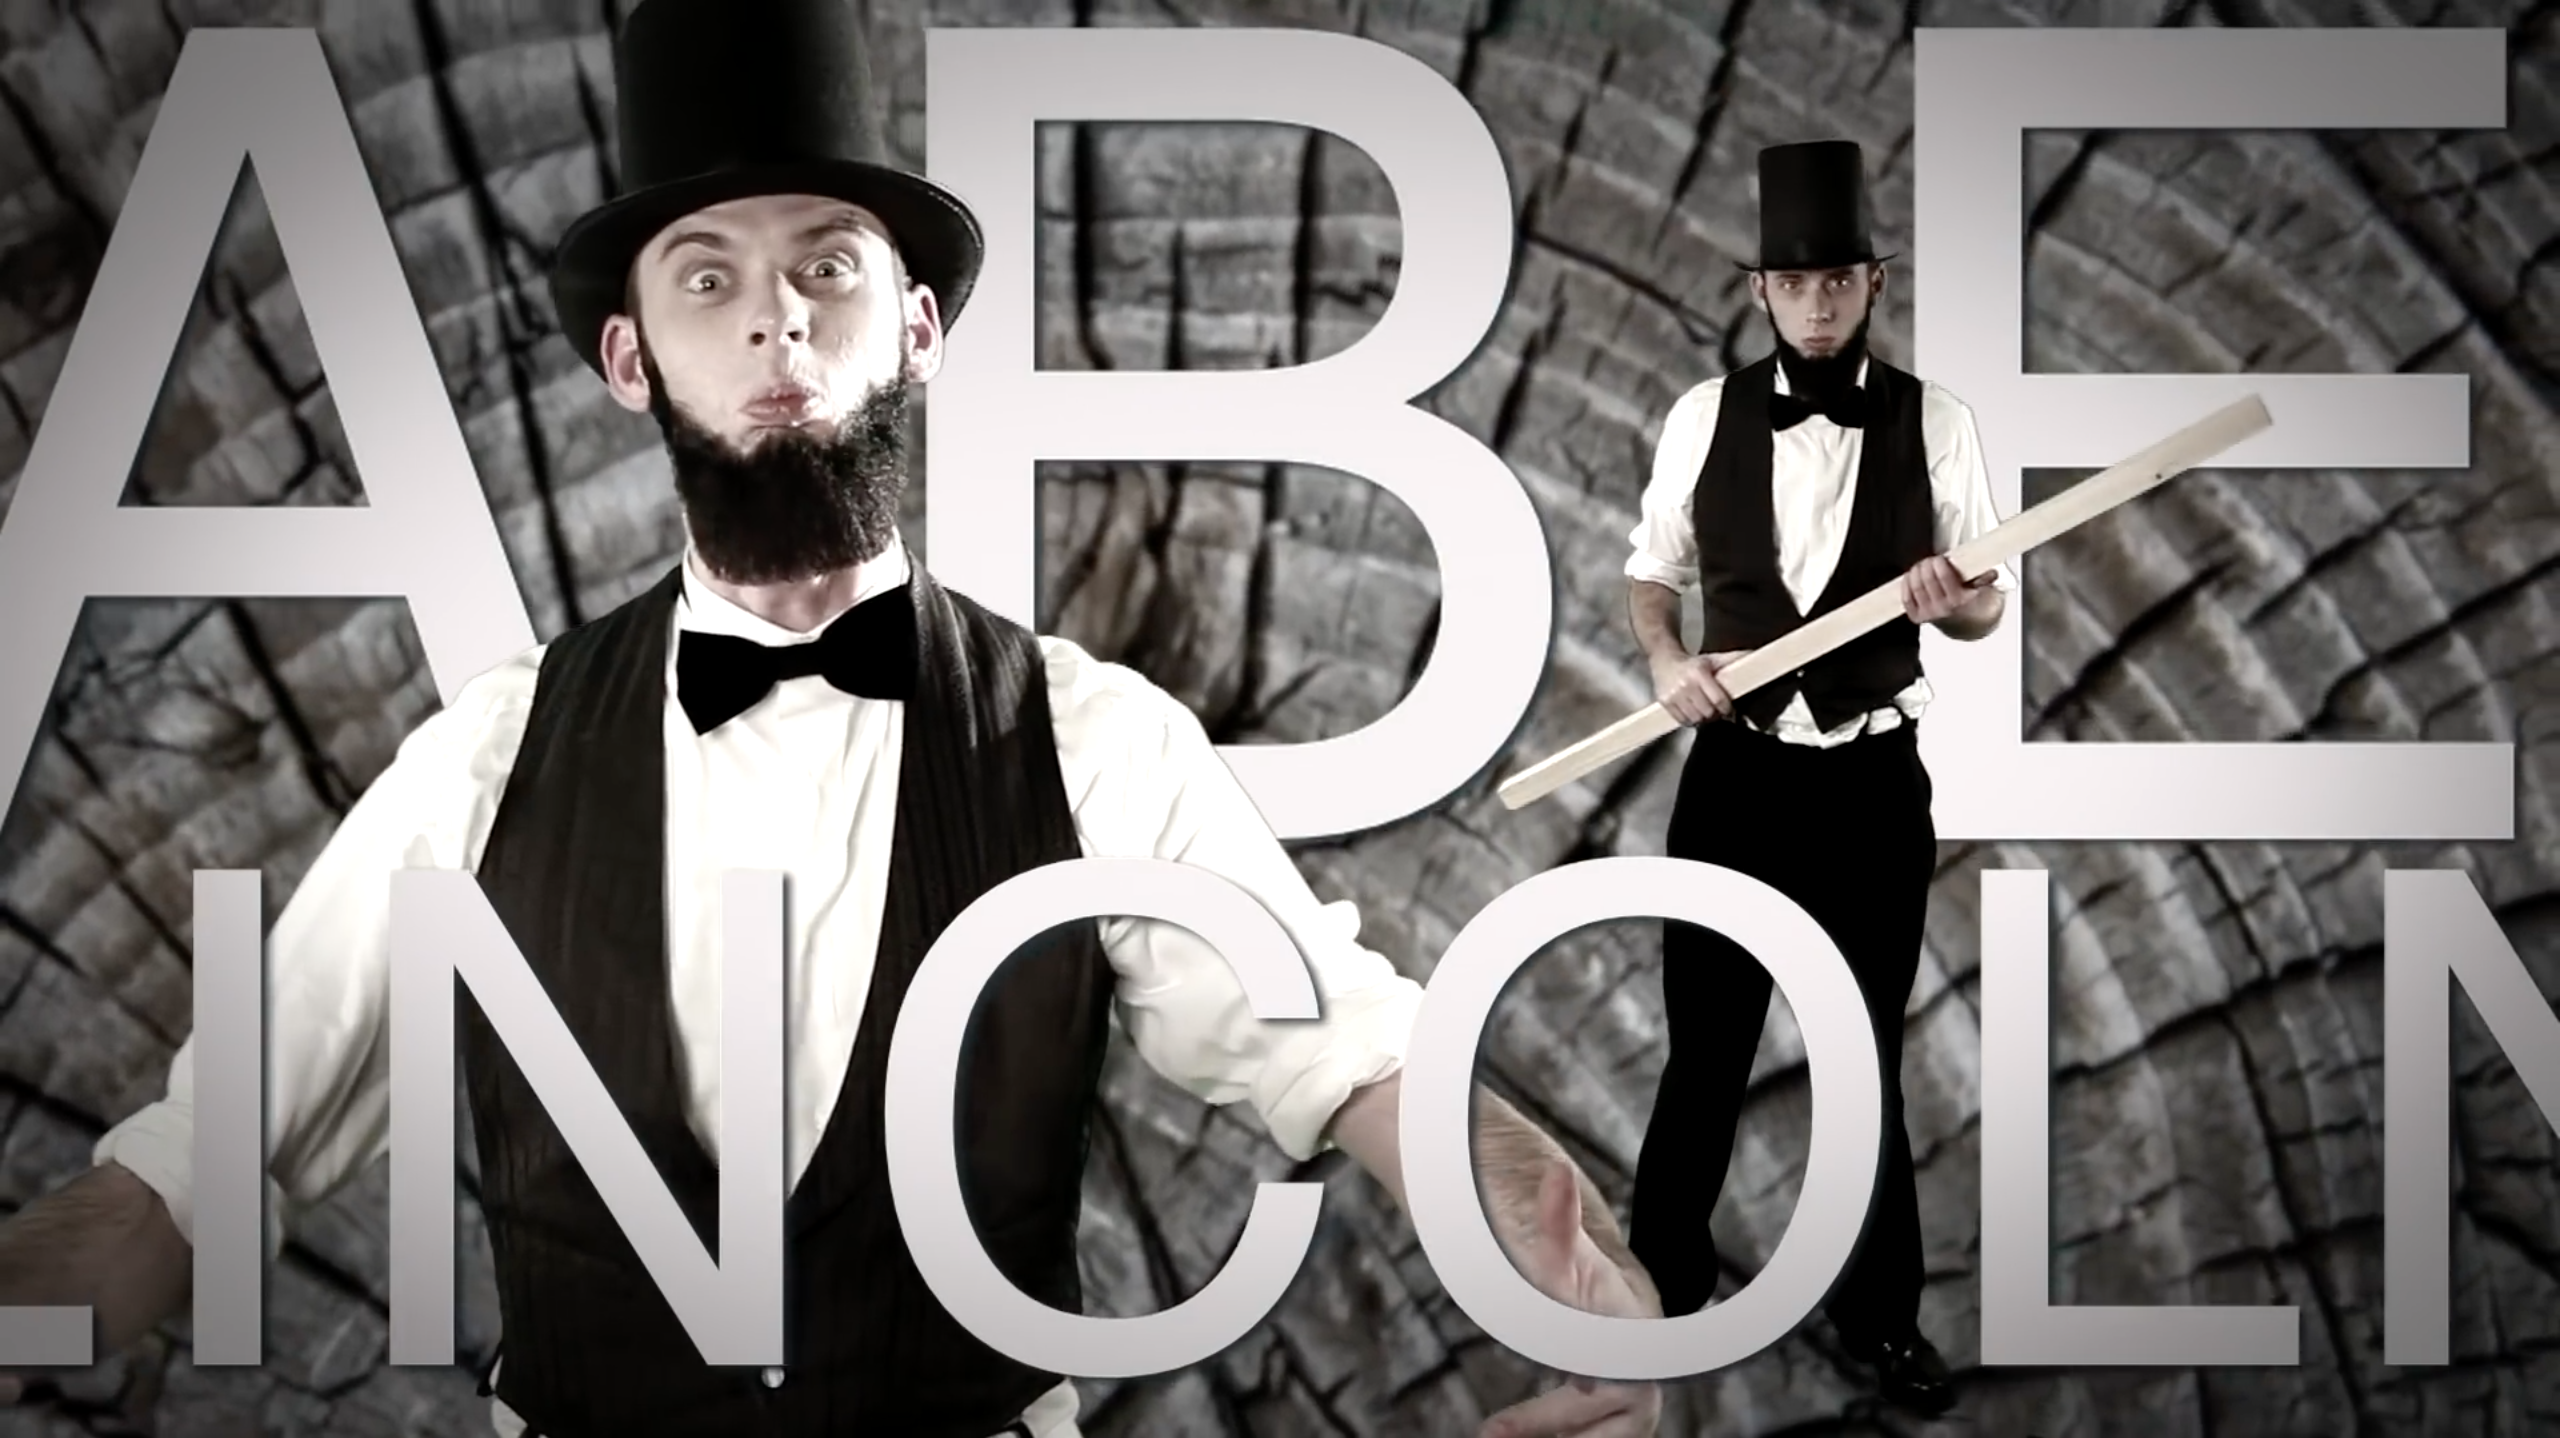 Abe Lincoln | Epic Rap Battles of History Wiki | FANDOM powered by ...